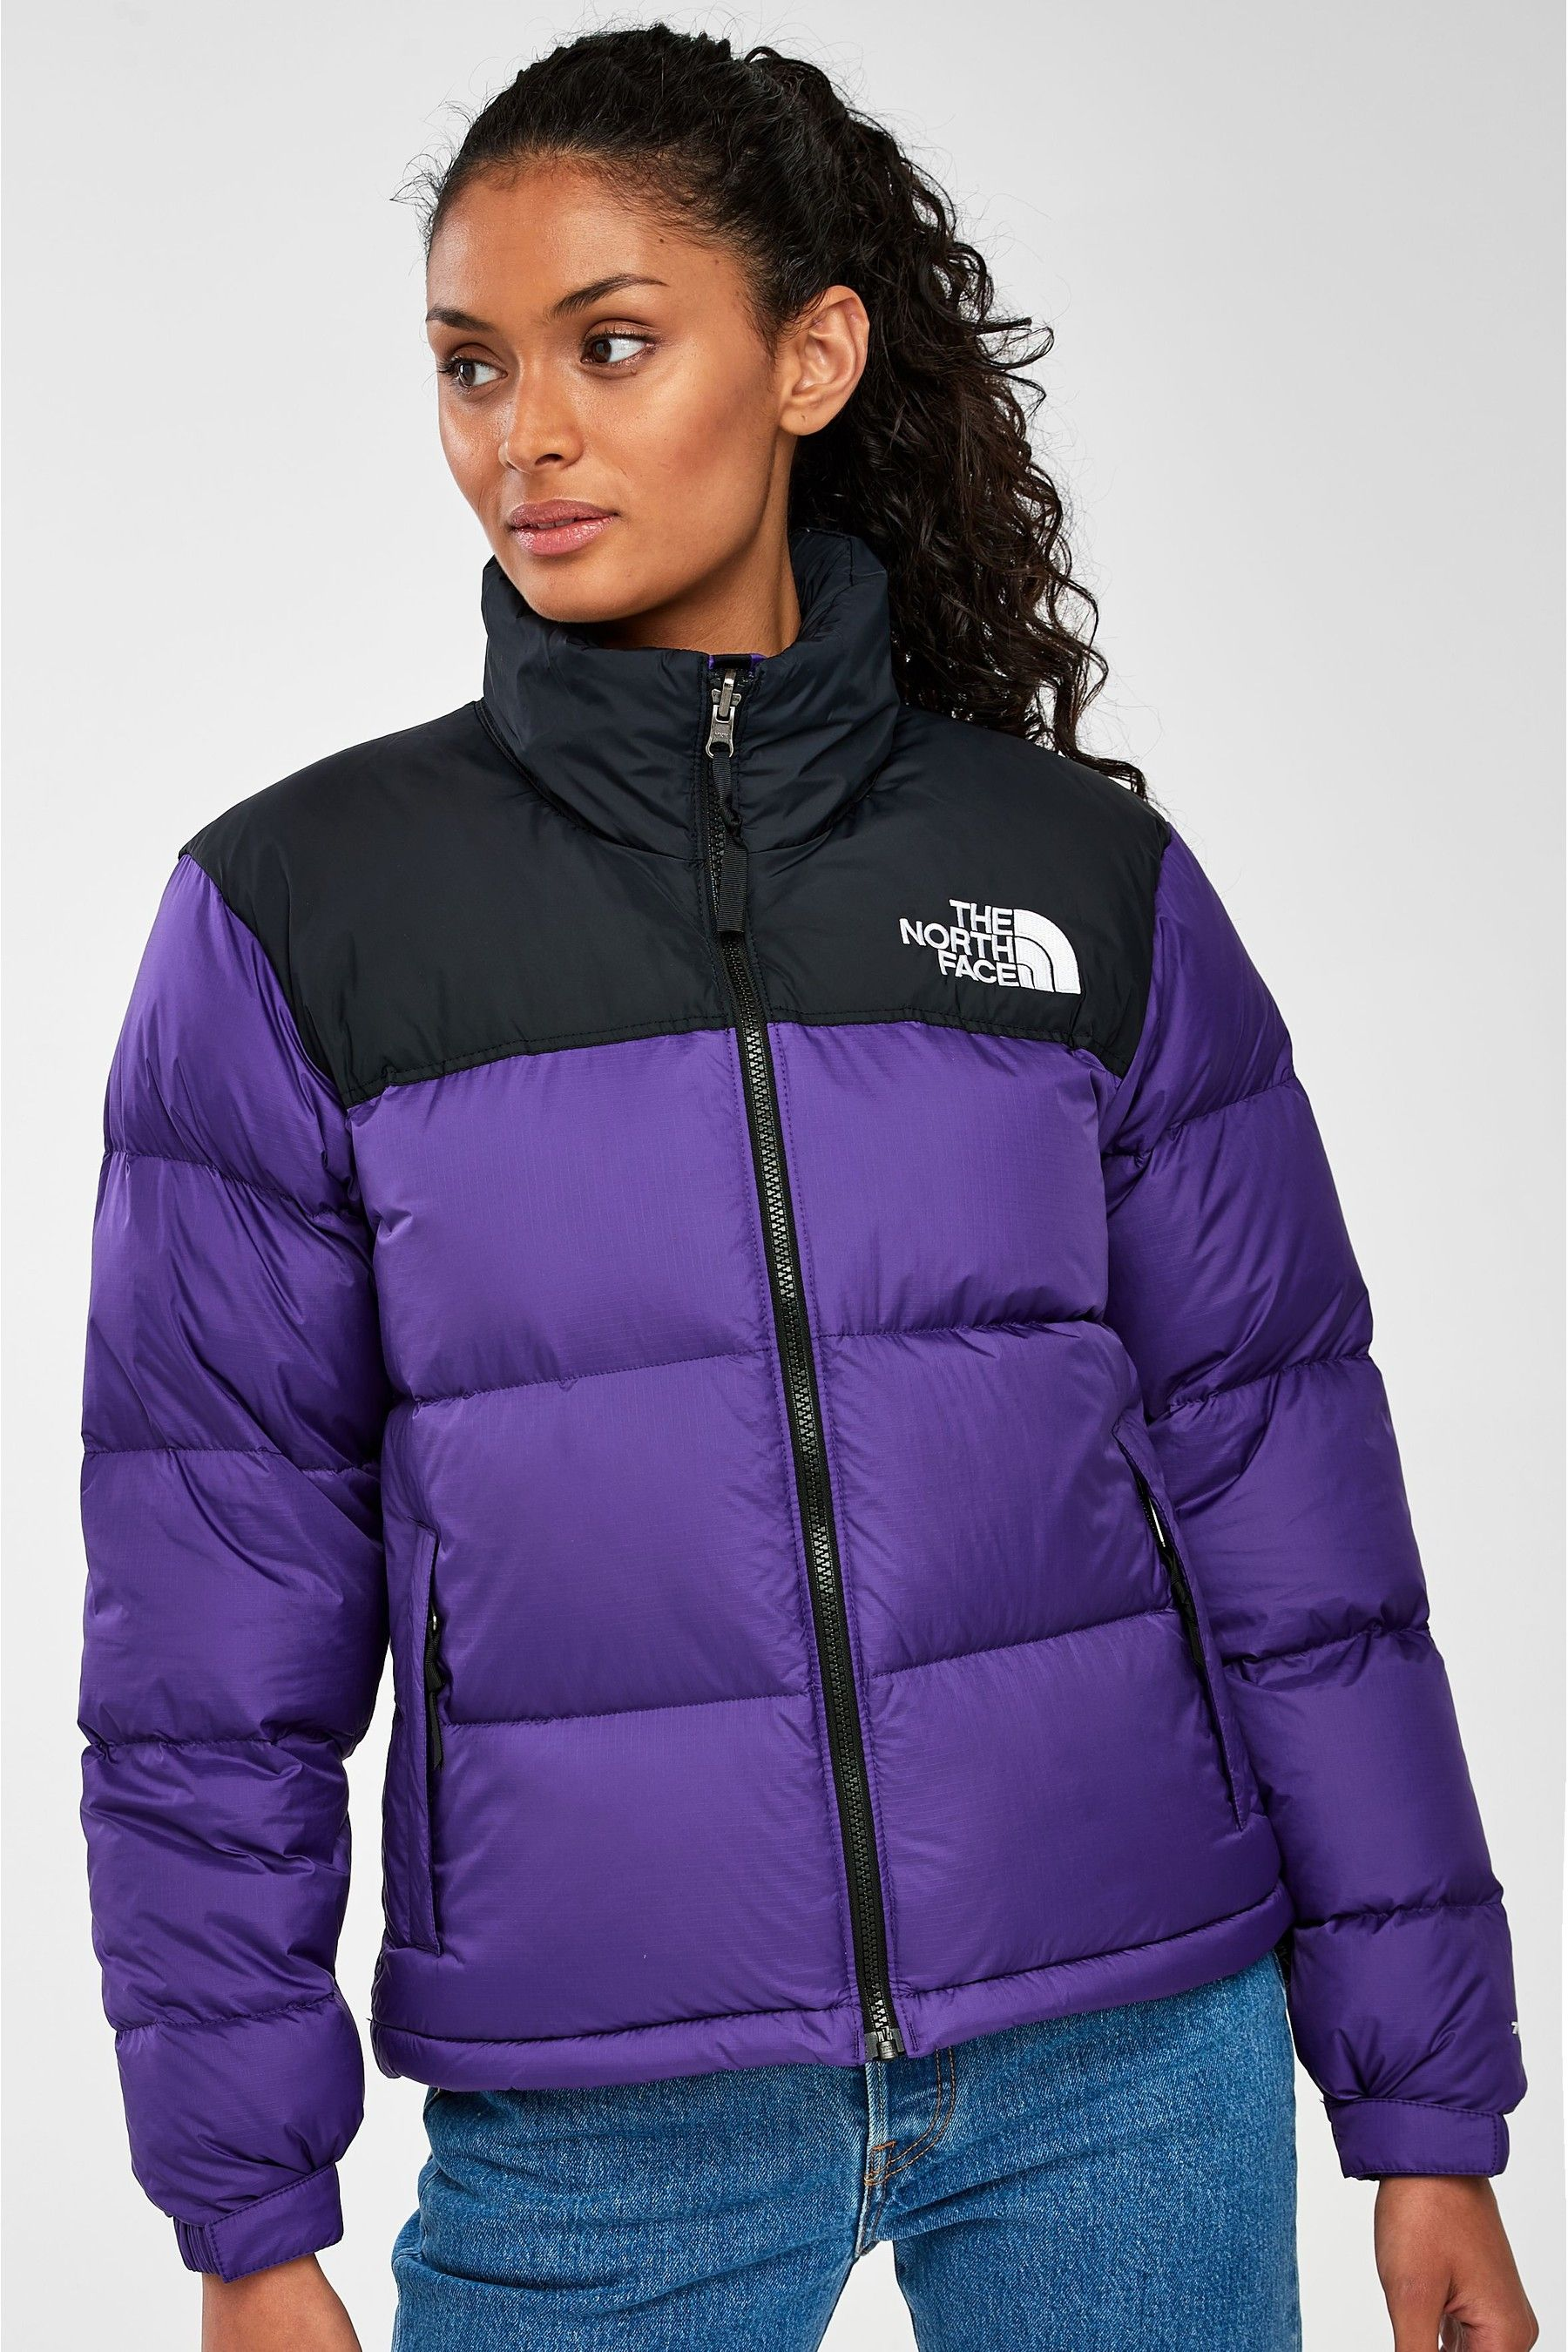 Buy The North Face 1996 Retro Nuptse Jacket From The Next Uk Online Shop North Face Puffer Jacket Purple North Face Jacket North Face Puffer [ 2700 x 1800 Pixel ]